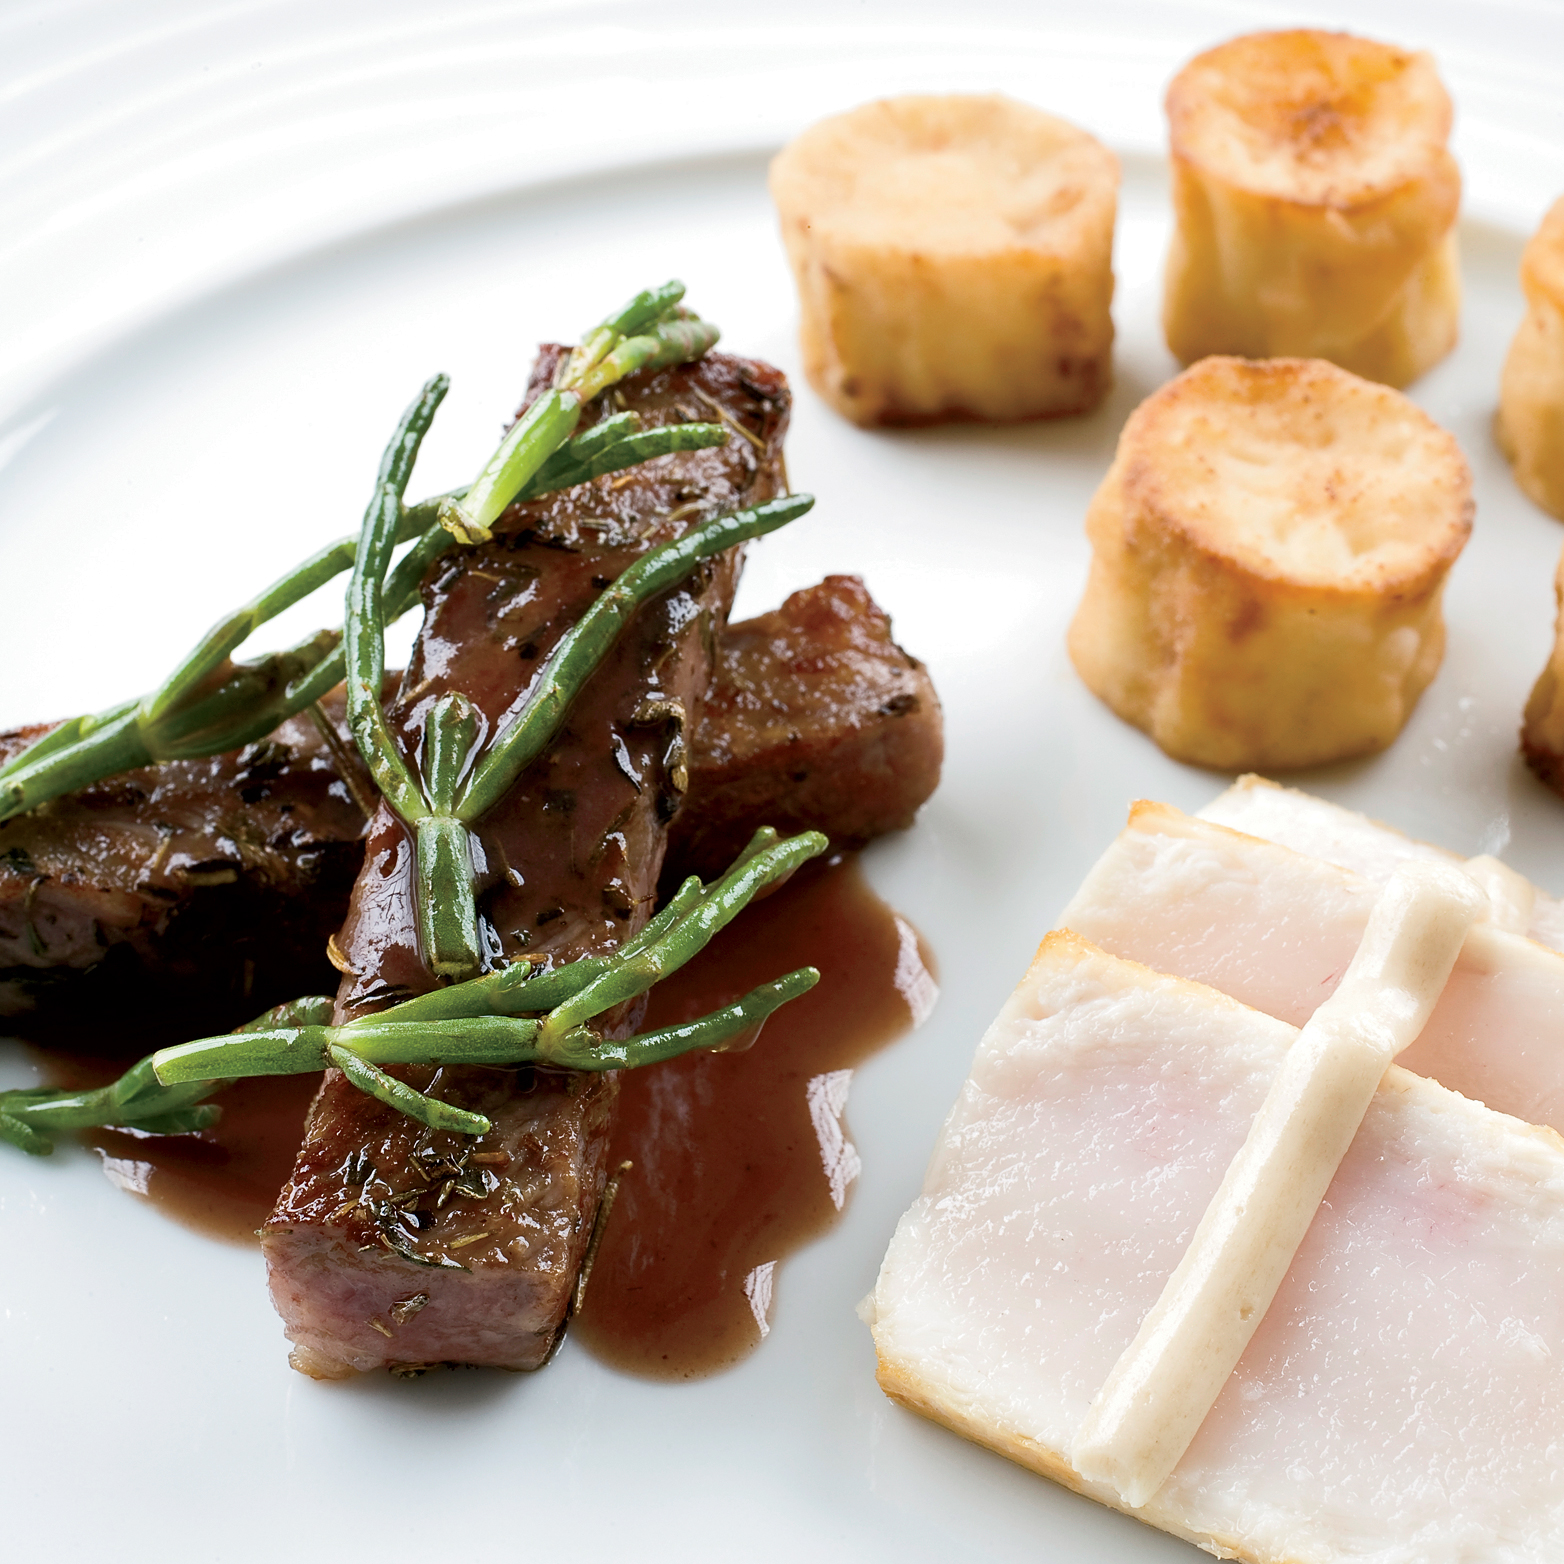 Eric Ripert's Surf and Turf